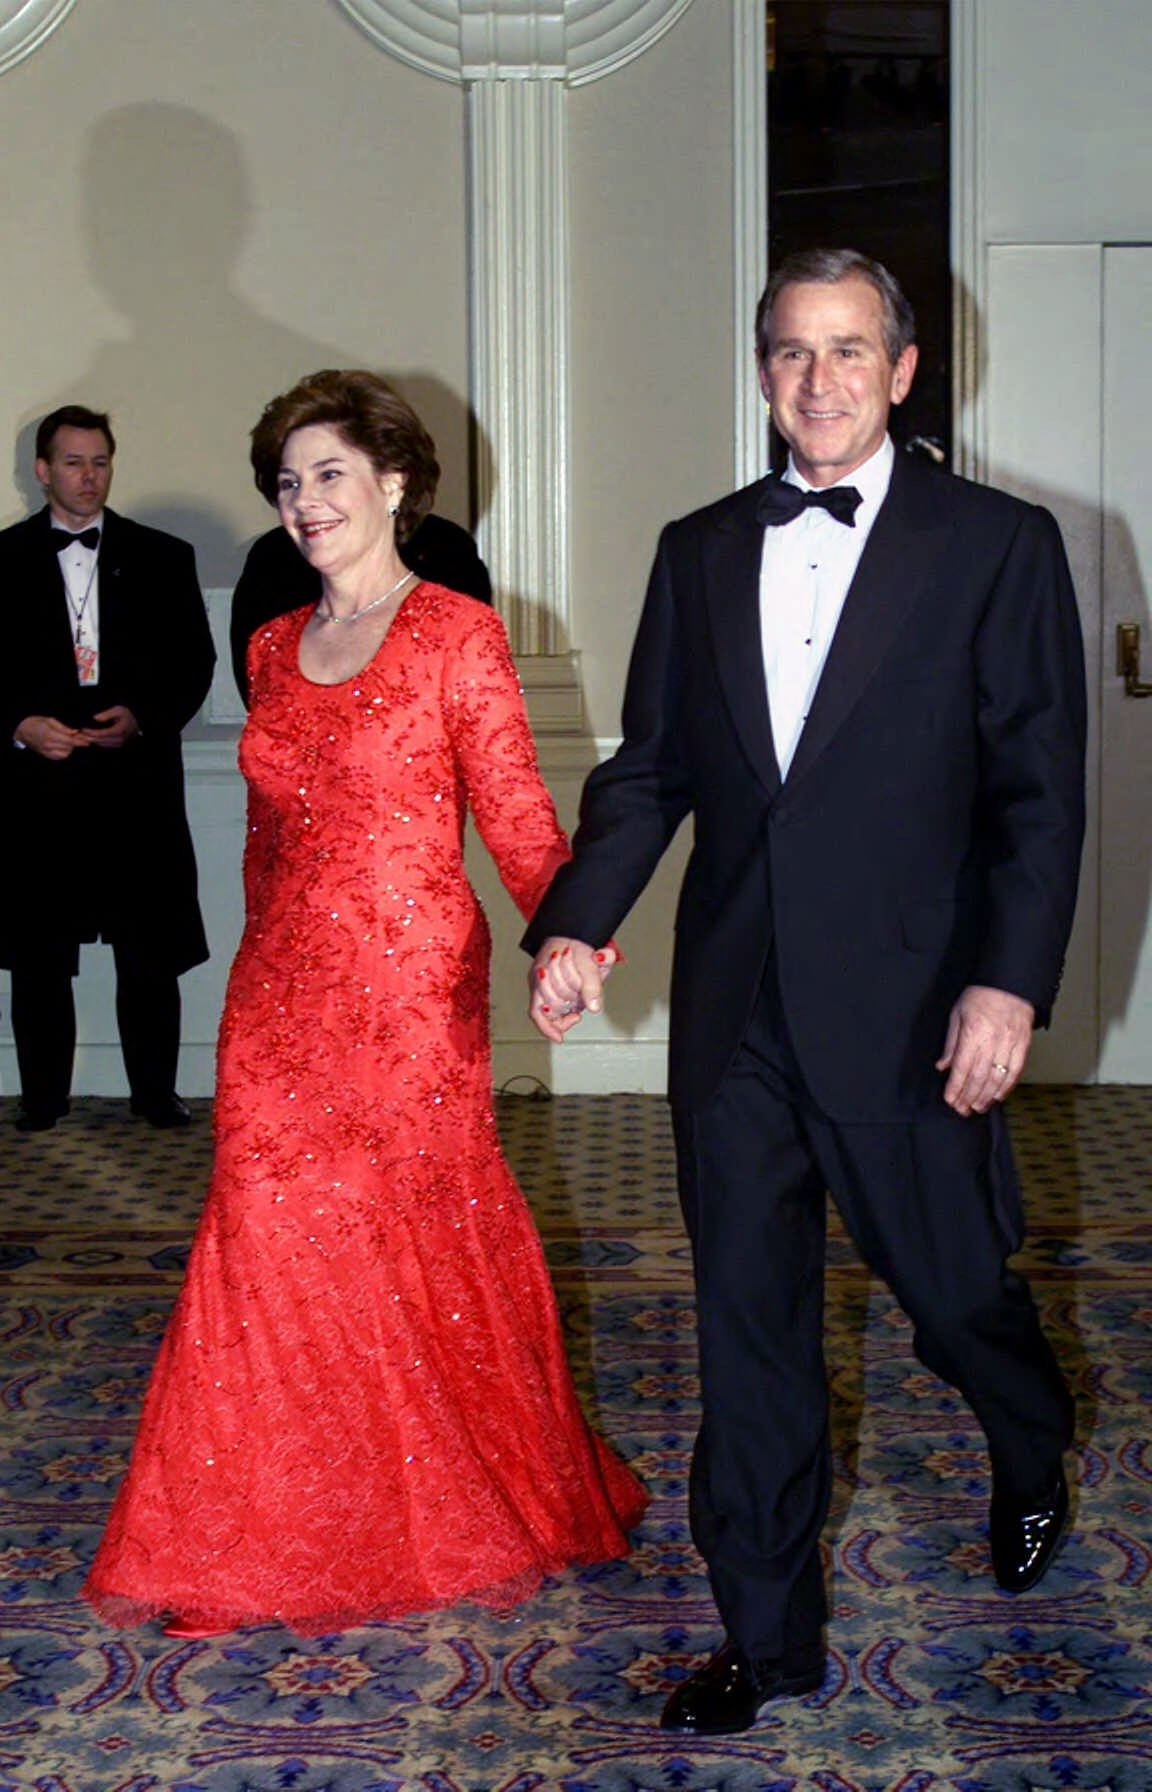 Laura Bush, Michael Faircloth, 2001: For her husband's first inauguration, Bush wore a red, crystal-embroidered Chantilly lace gown designed by a fellow Texan.